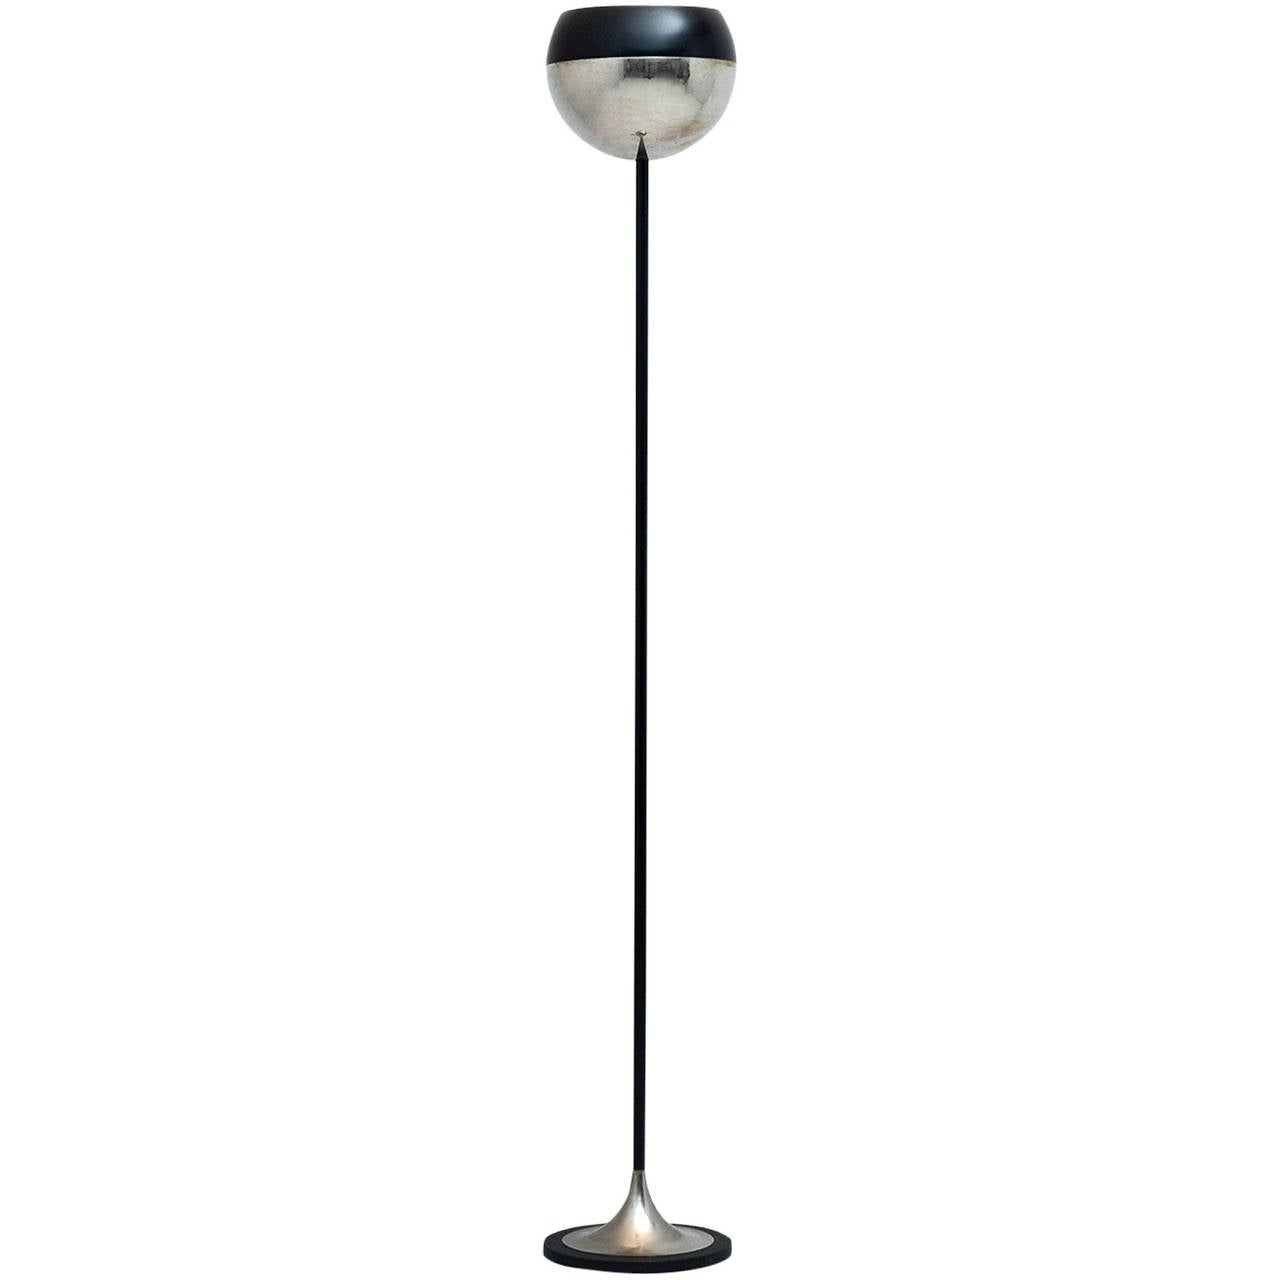 Stilnovo 'Uplighter' Floor Lamp